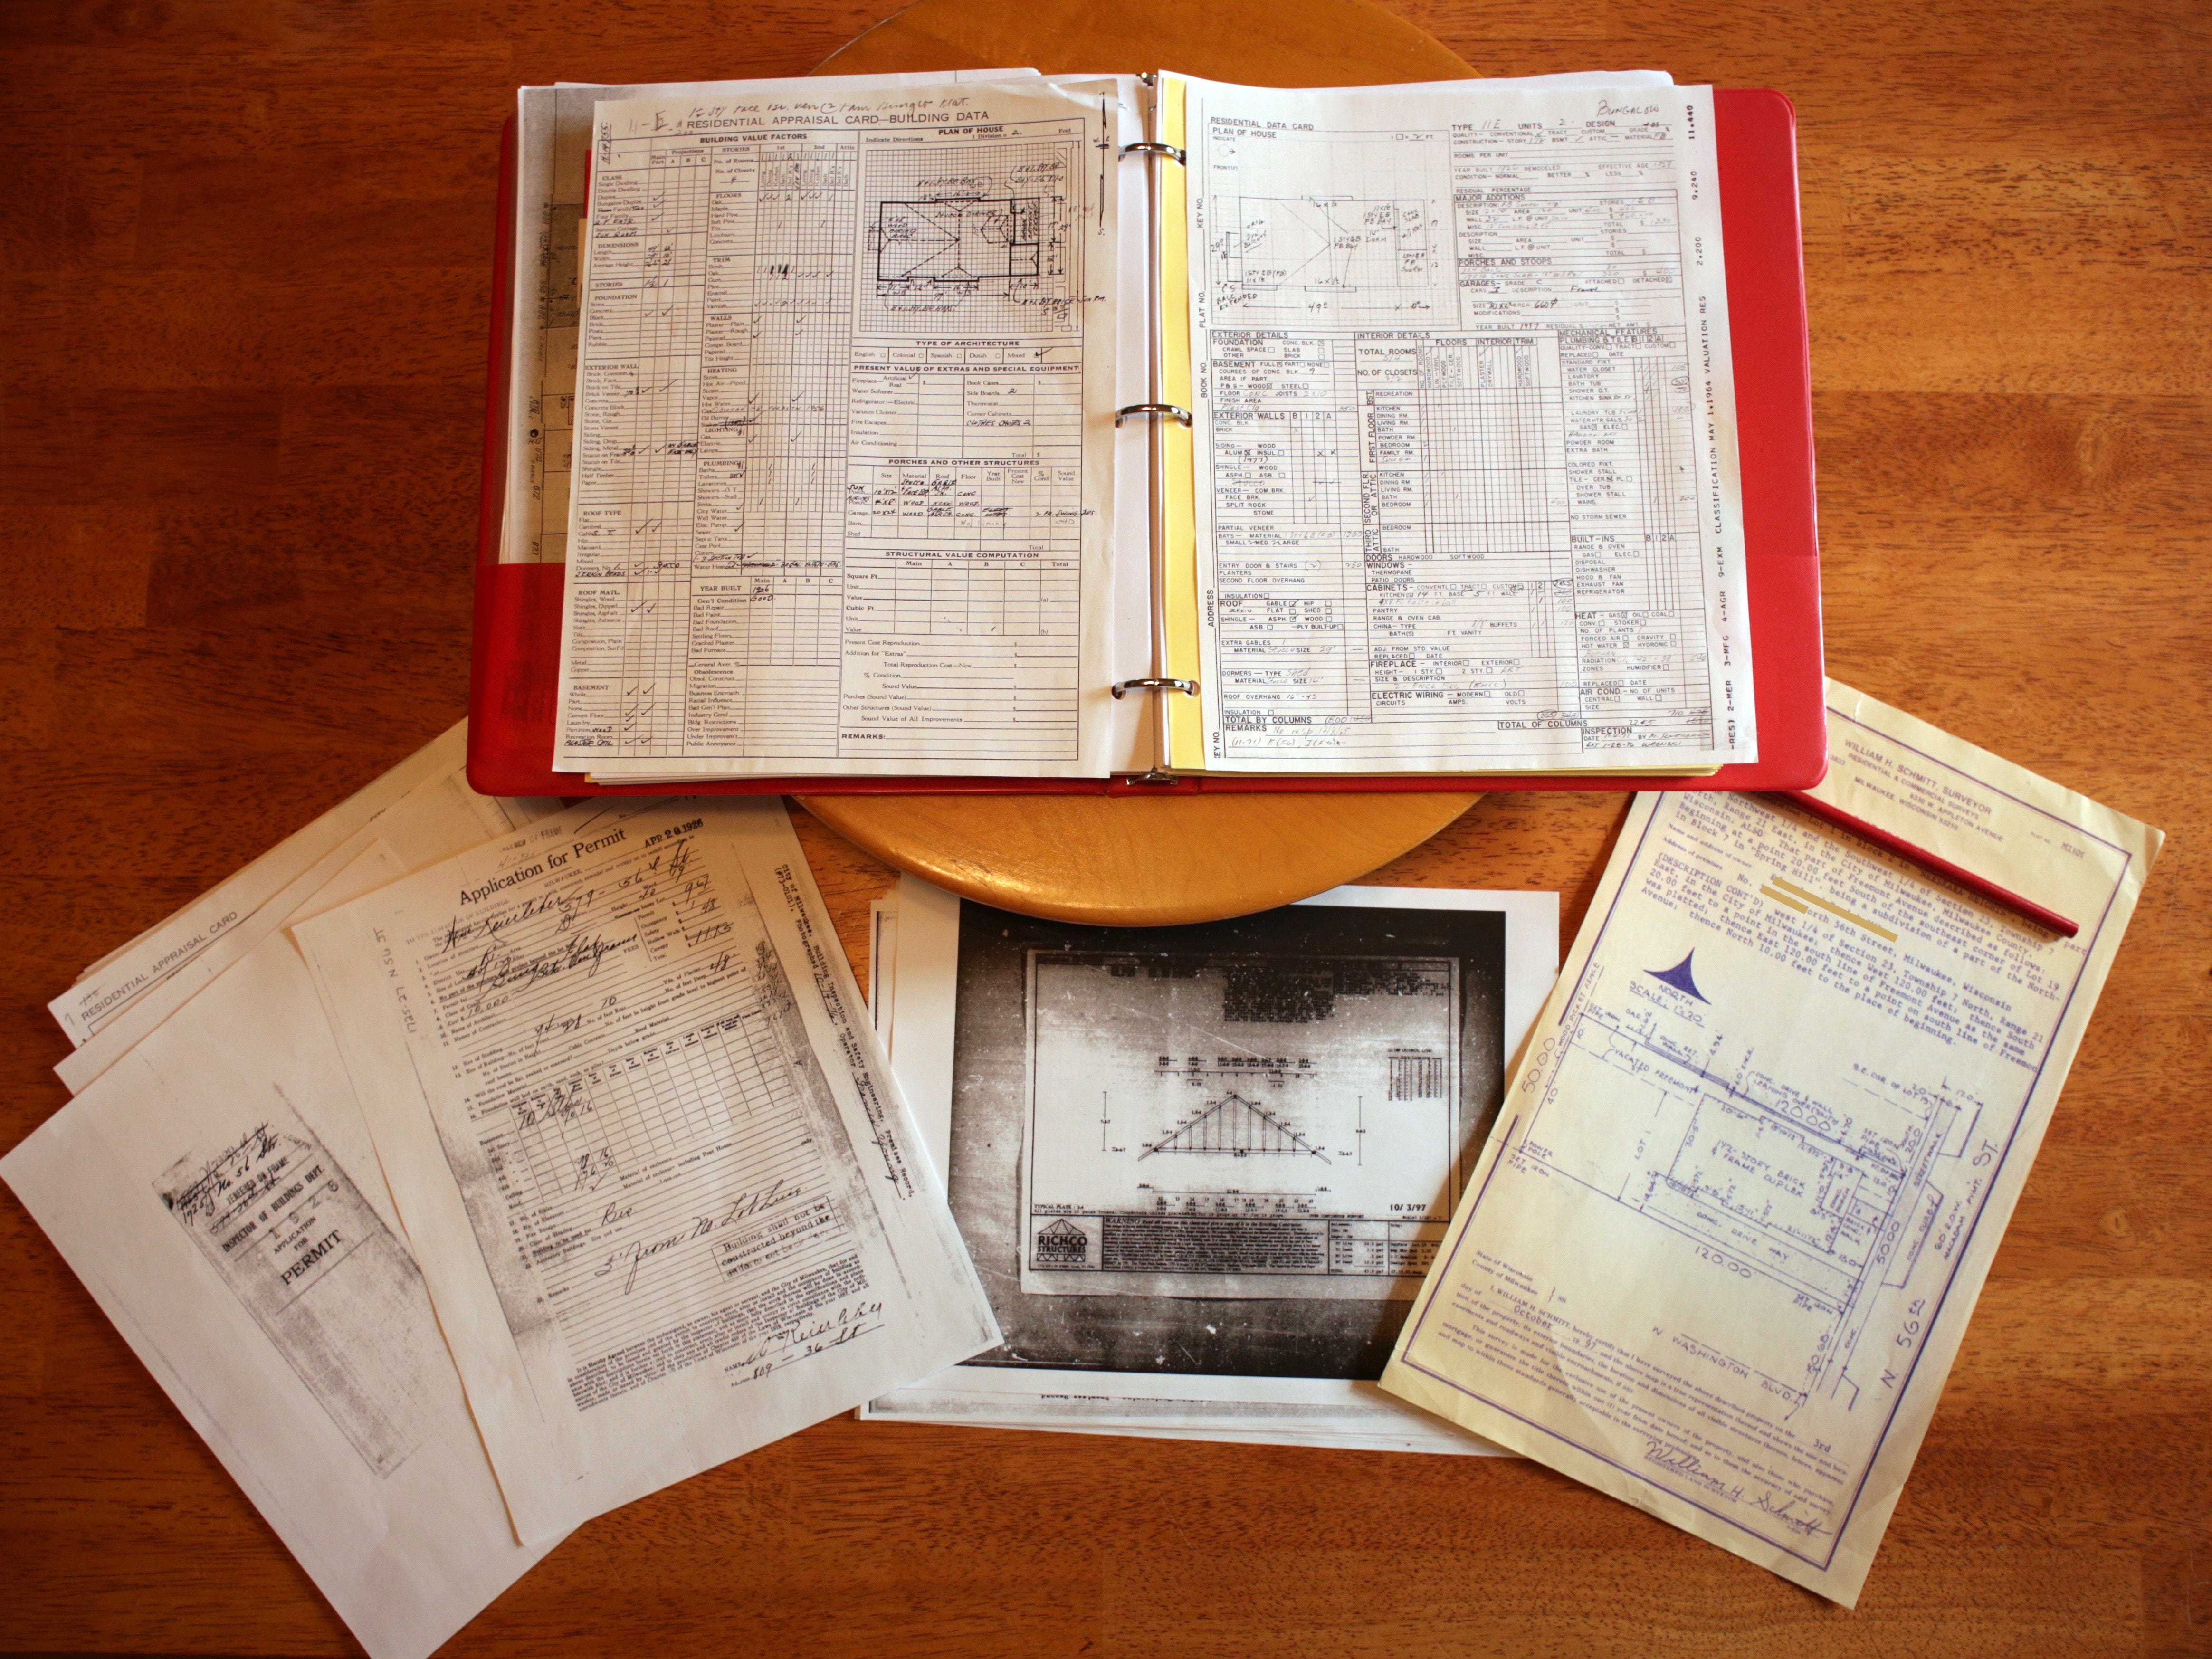 Appraisal records, building permits and plat of surveys are just some of the documents that can provide information about your house.